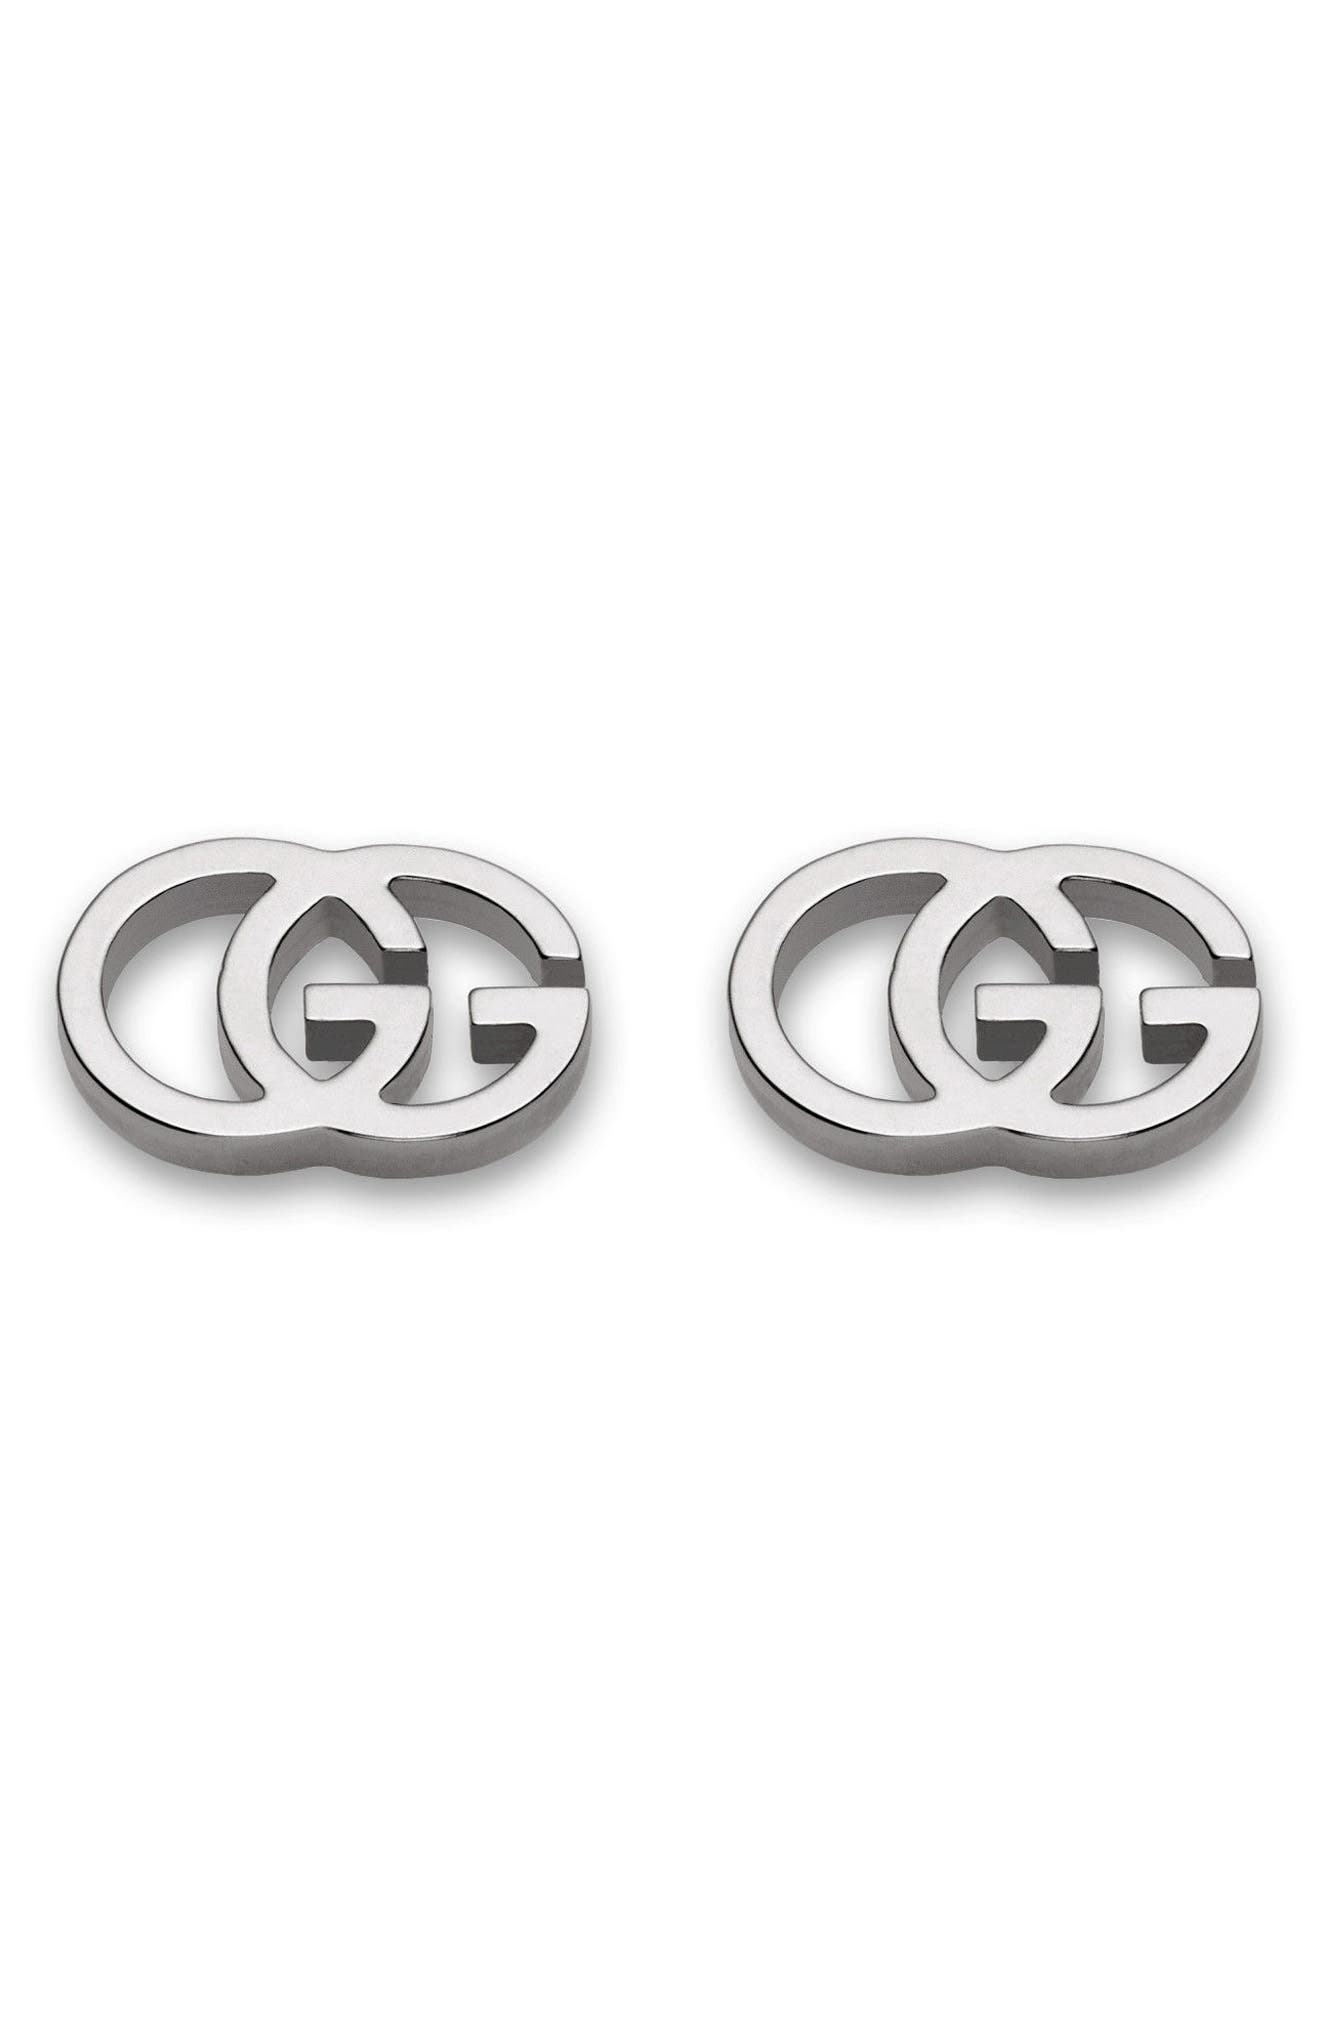 Double-G Stud Earrings,                         Main,                         color, WHITE GOLD